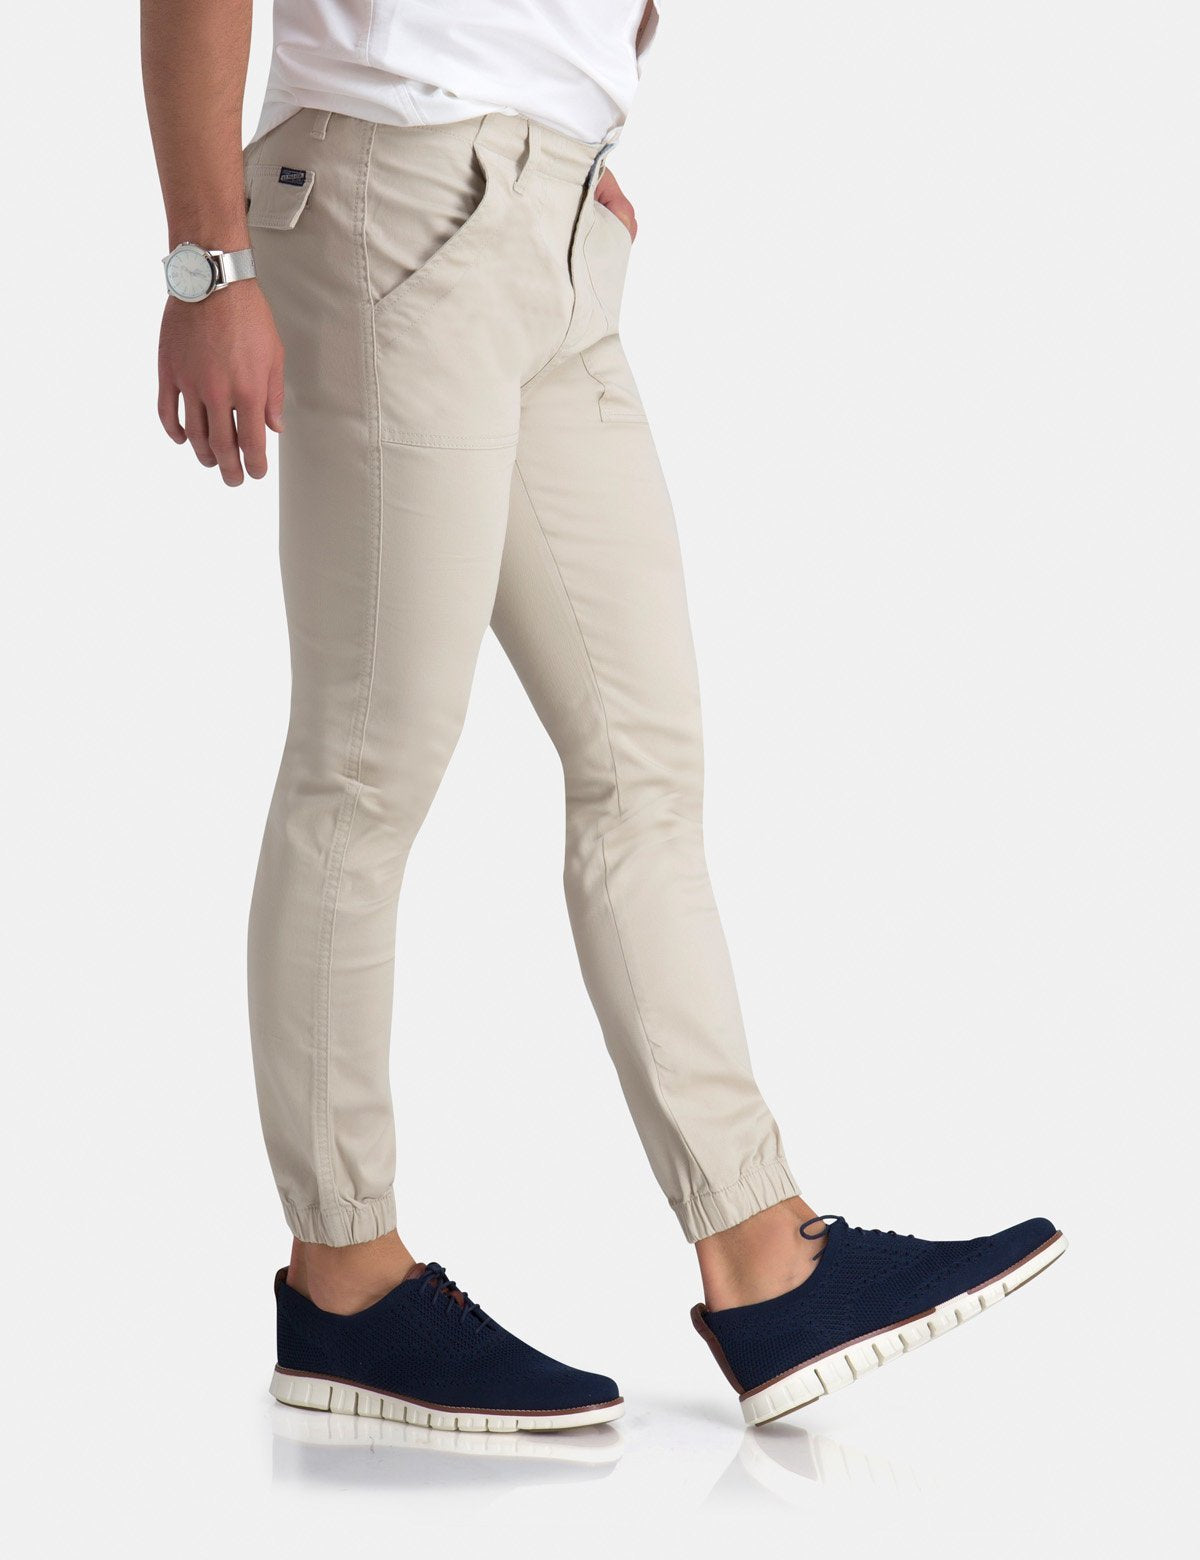 STRETCH SLIM JOGGER - U.S. Polo Assn.